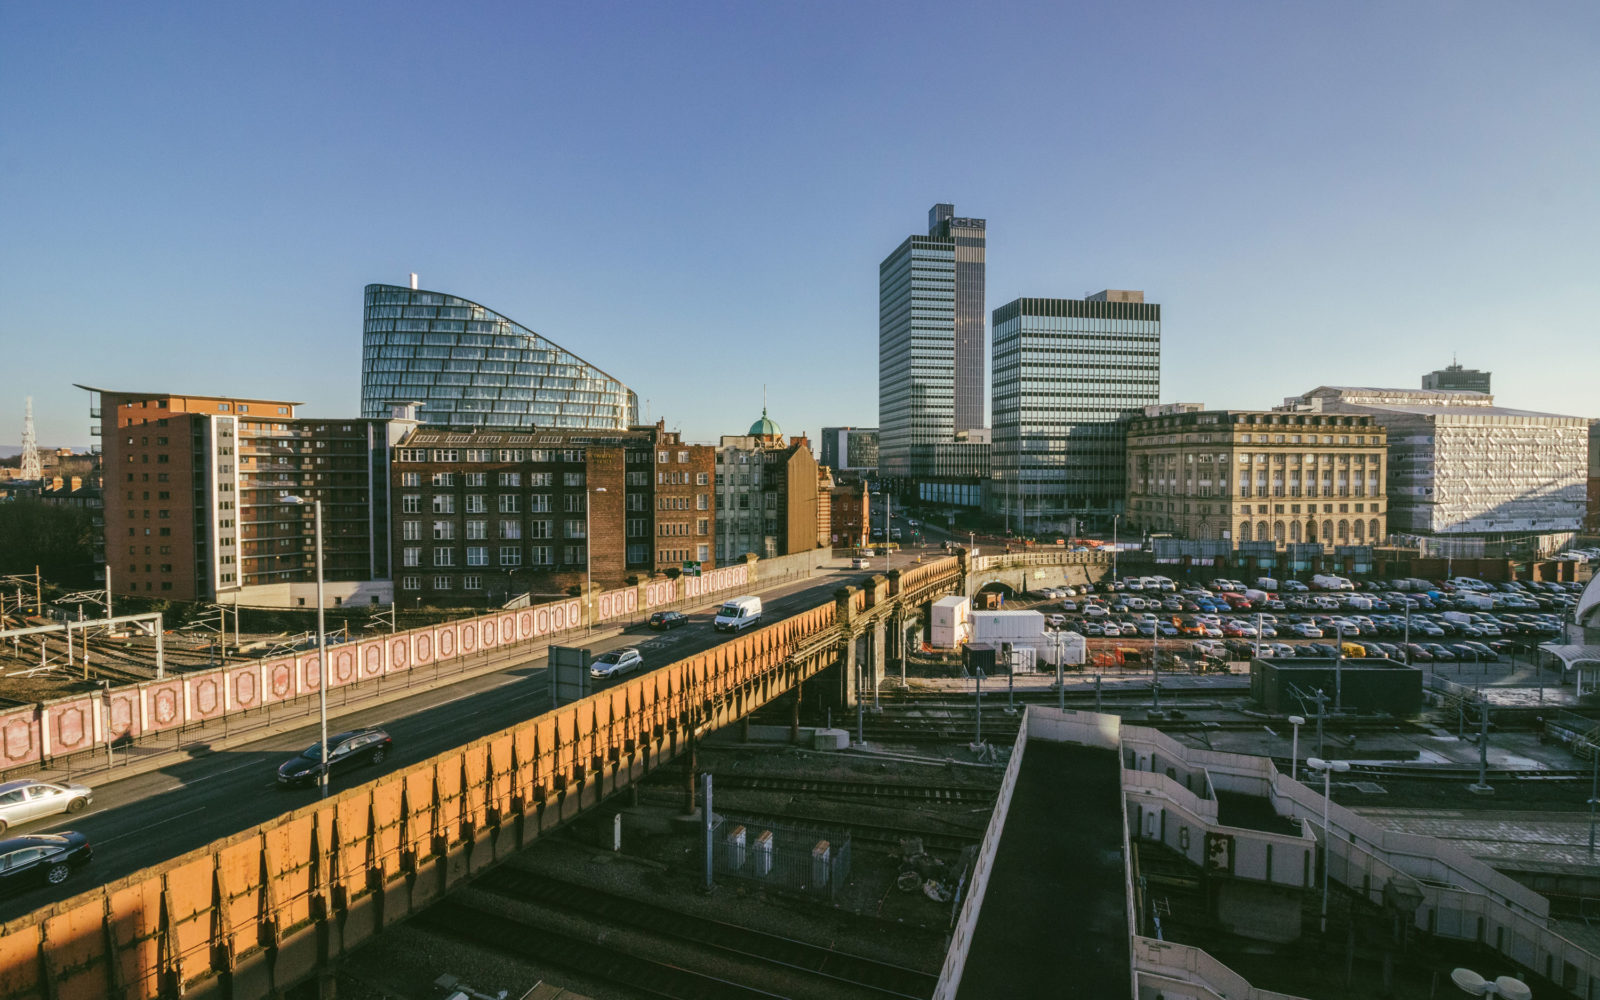 UK city aims to attract 40% more conference business - CMW